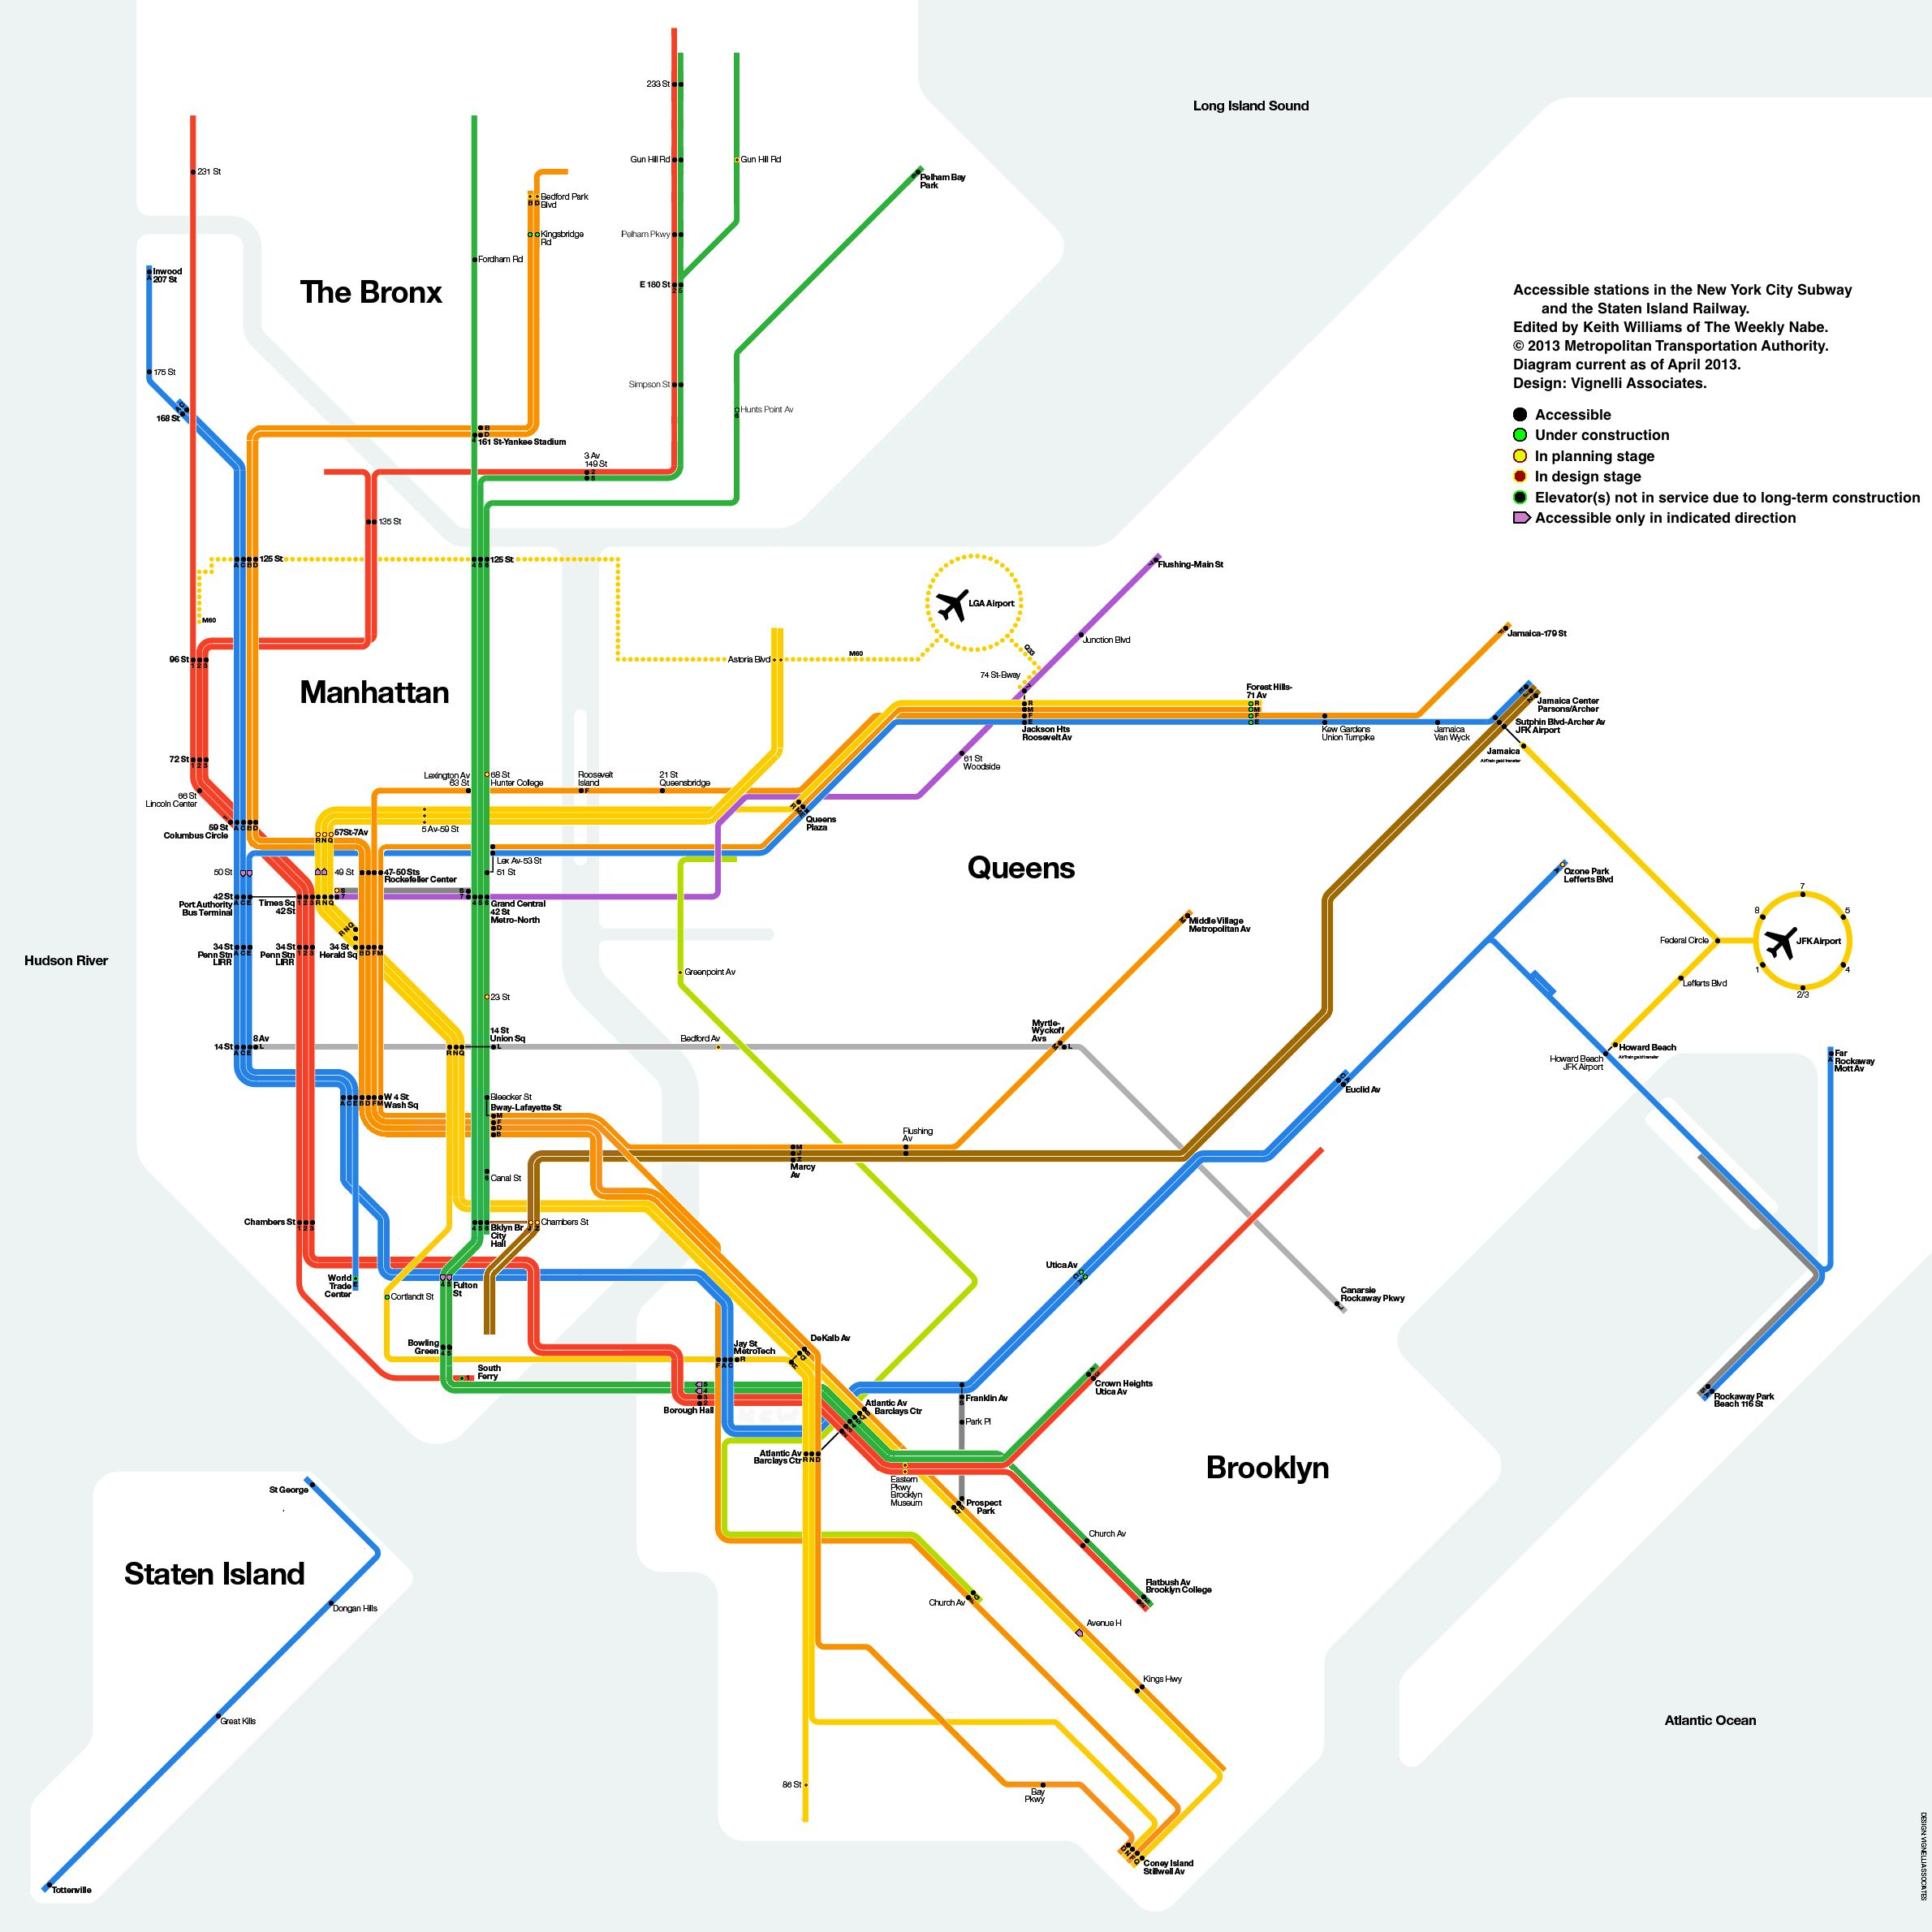 NYC Subway Map With Only Accessible Stations Shown Shows The - Nyc subway map queens ny